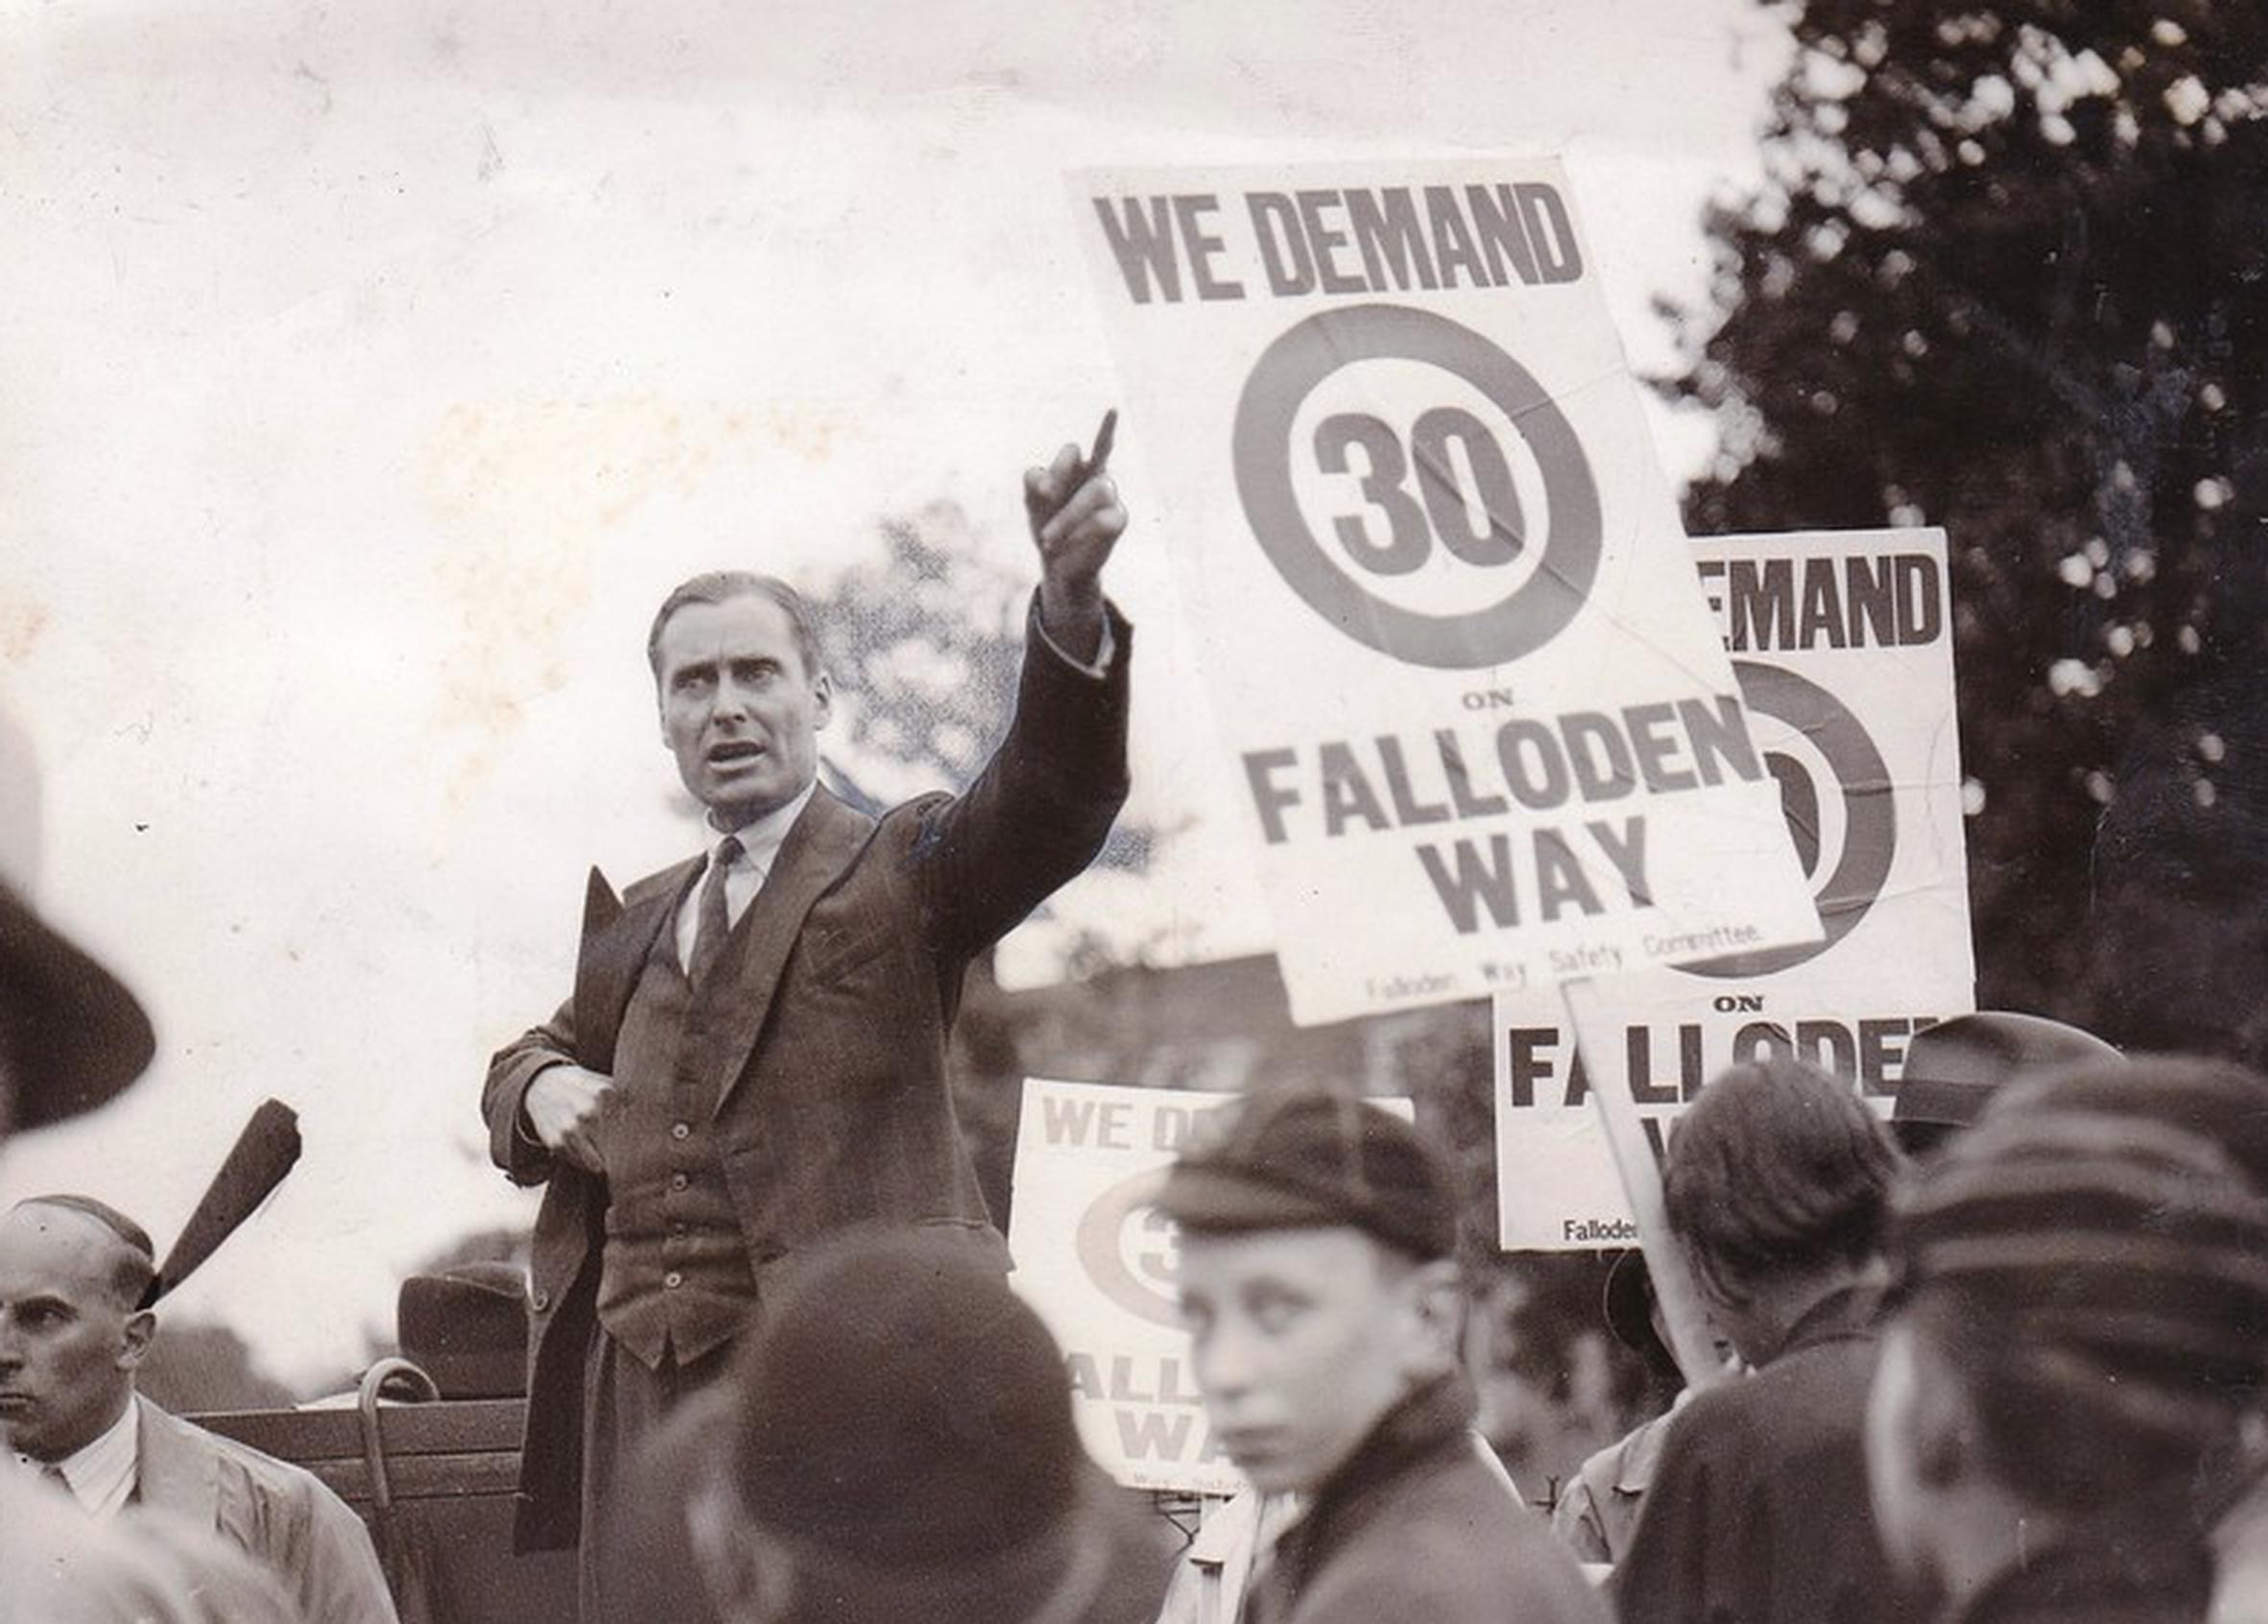 Tom Foley campaigning in the 1930s